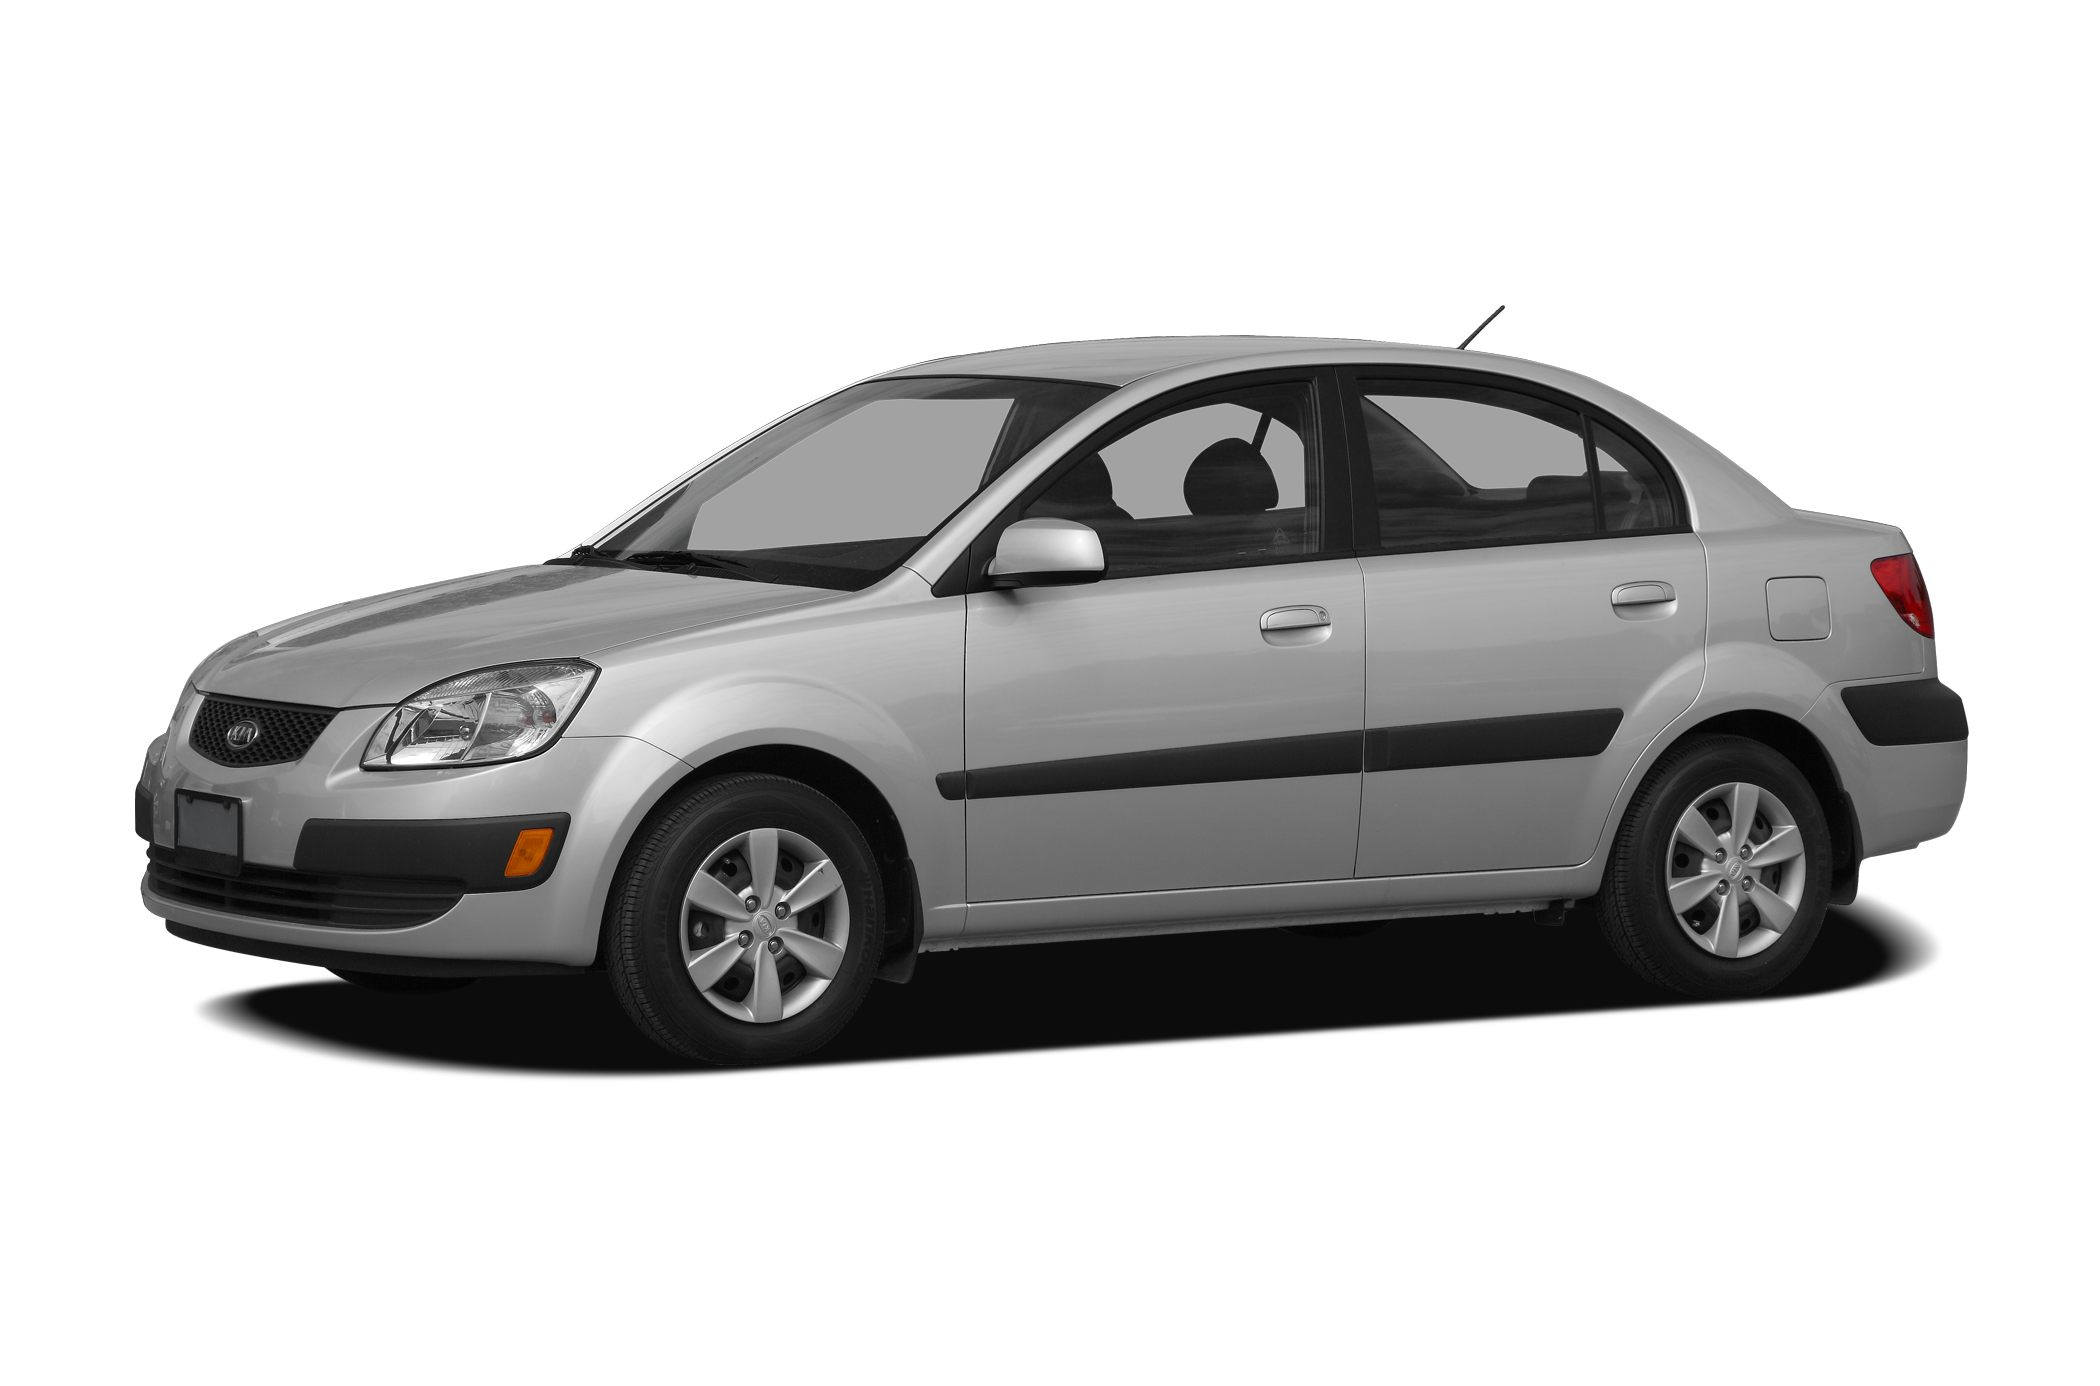 2009 Kia Rio LX For more information on this vehiclePlease call Teresa in the InternetDepartment